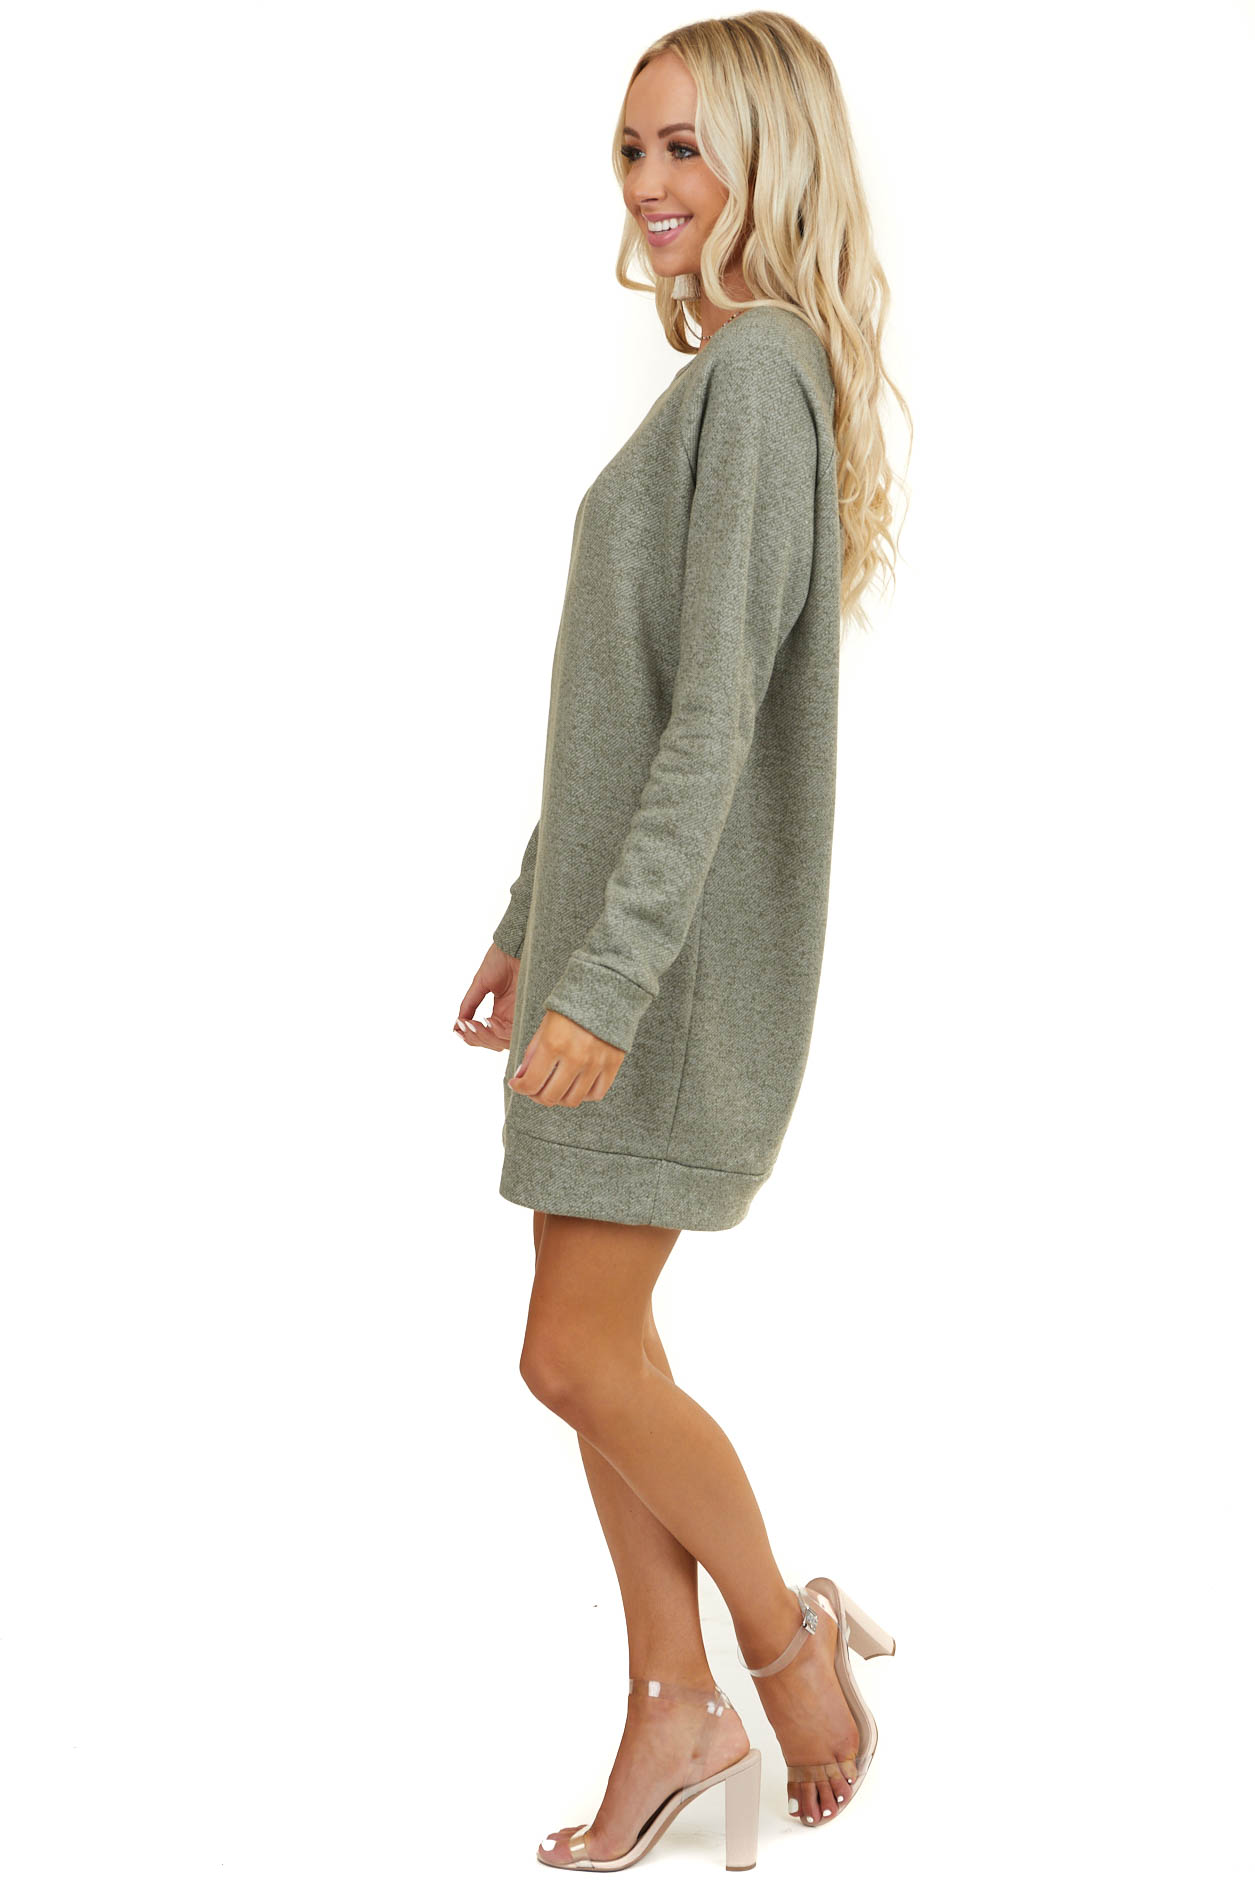 Olive Long Sleeve Knit Mini Sweater Dress with Rounded Neck